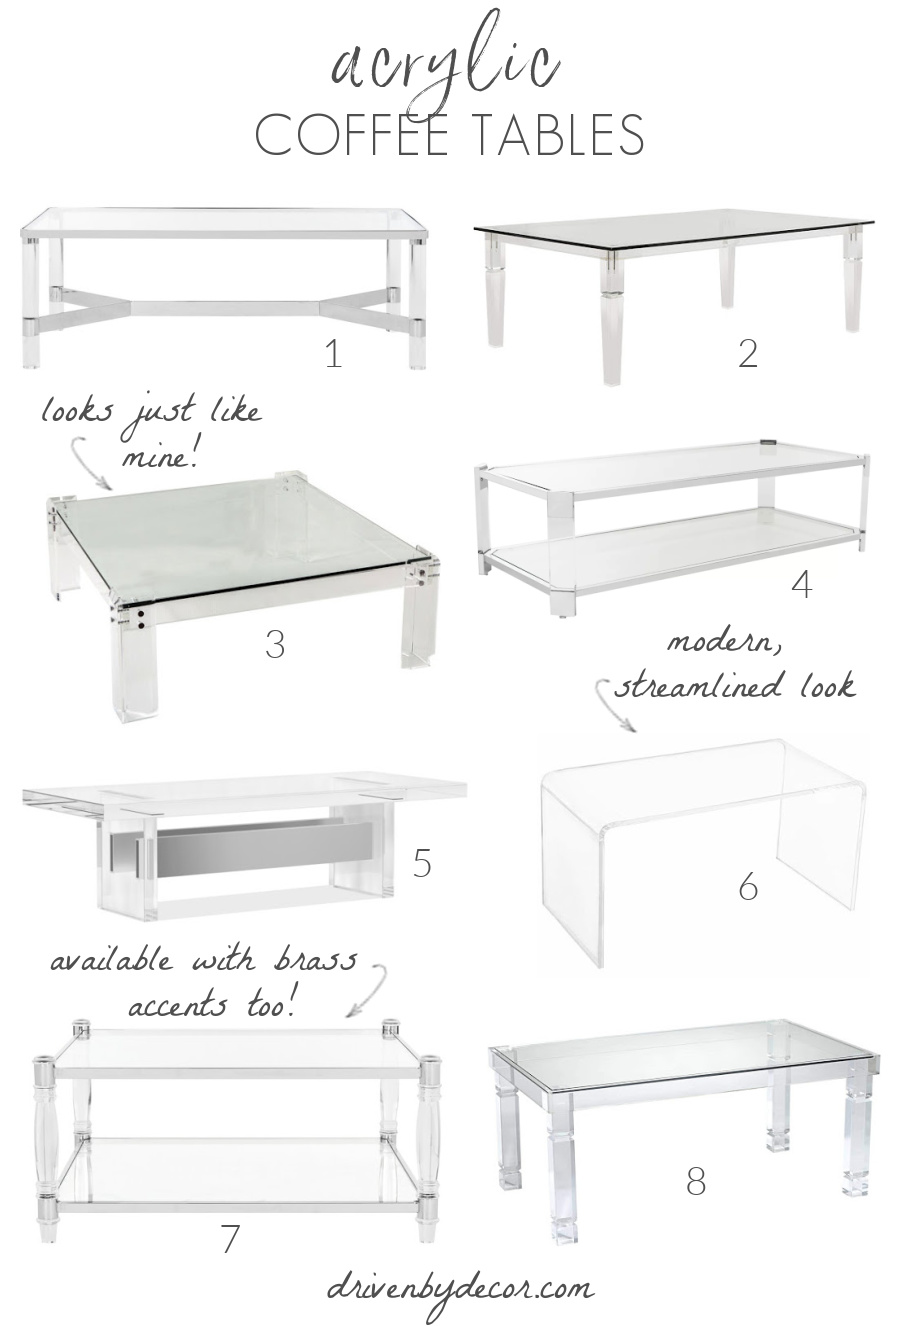 Love these acrylic coffee tables!